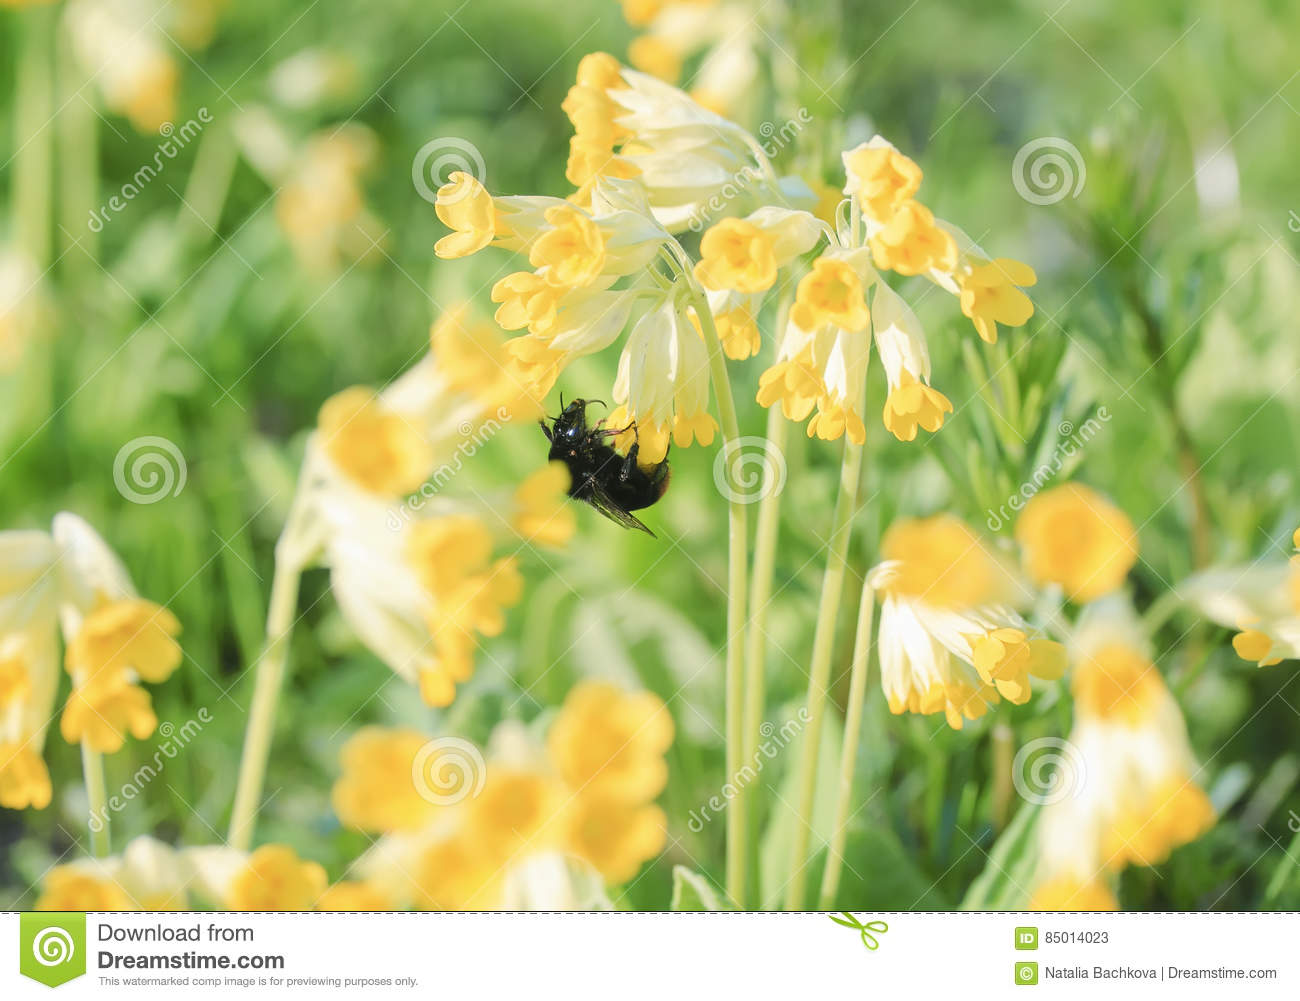 Bumblebee Collects Nectar From Yellow Flowers Of The Primrose In The